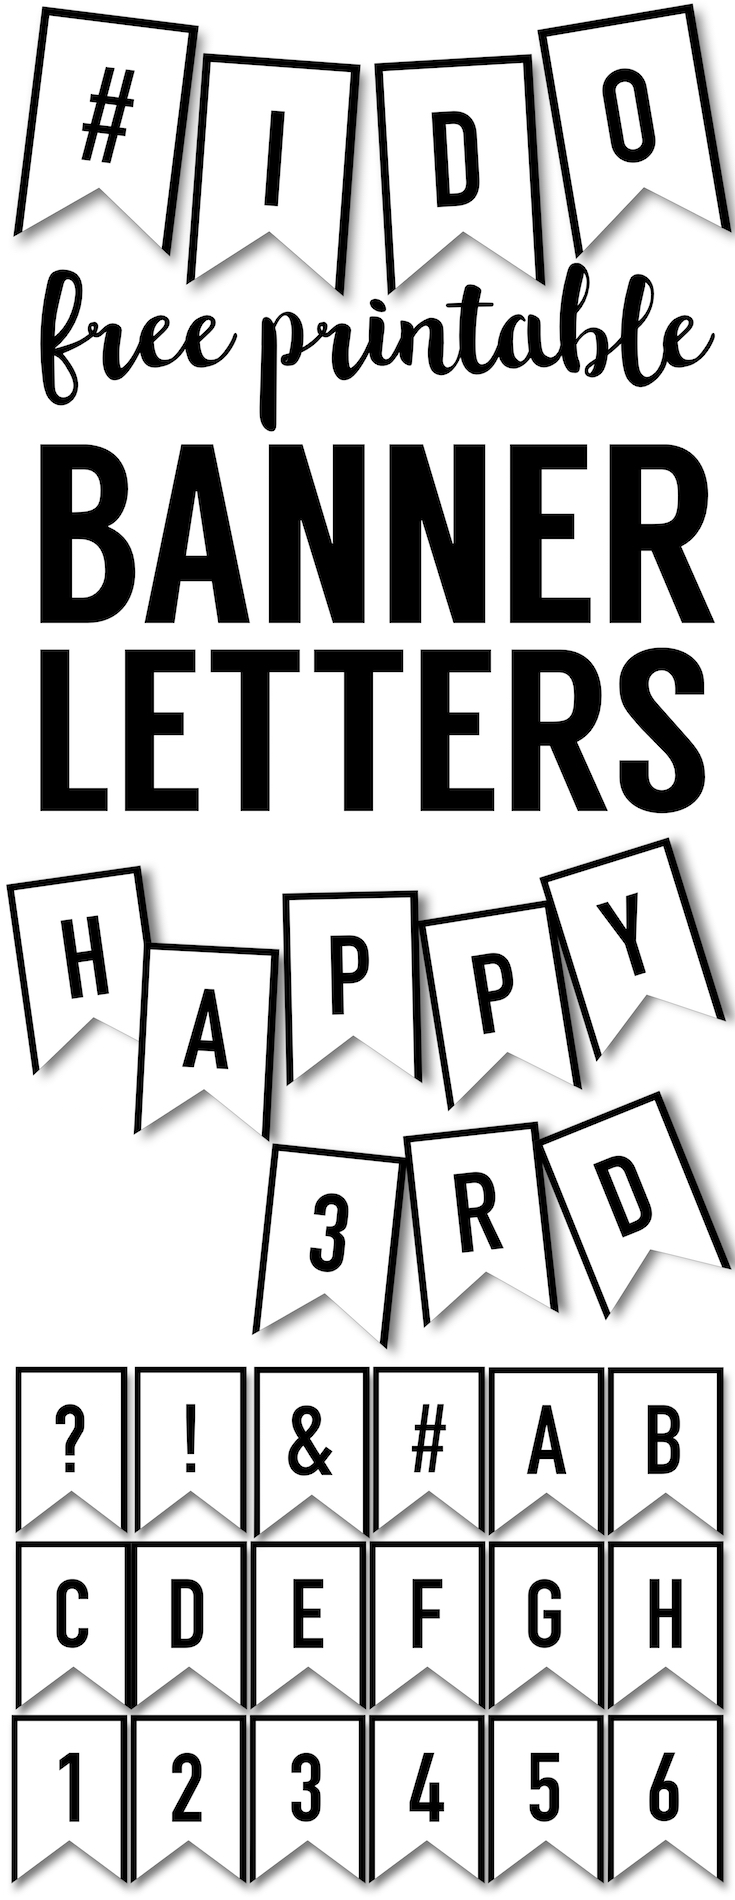 Banner Templates Free Printable Abc Letters Paper Trail Design In 2020 Free Printable Abc Letters Printable Birthday Banner Printable Abc Letters